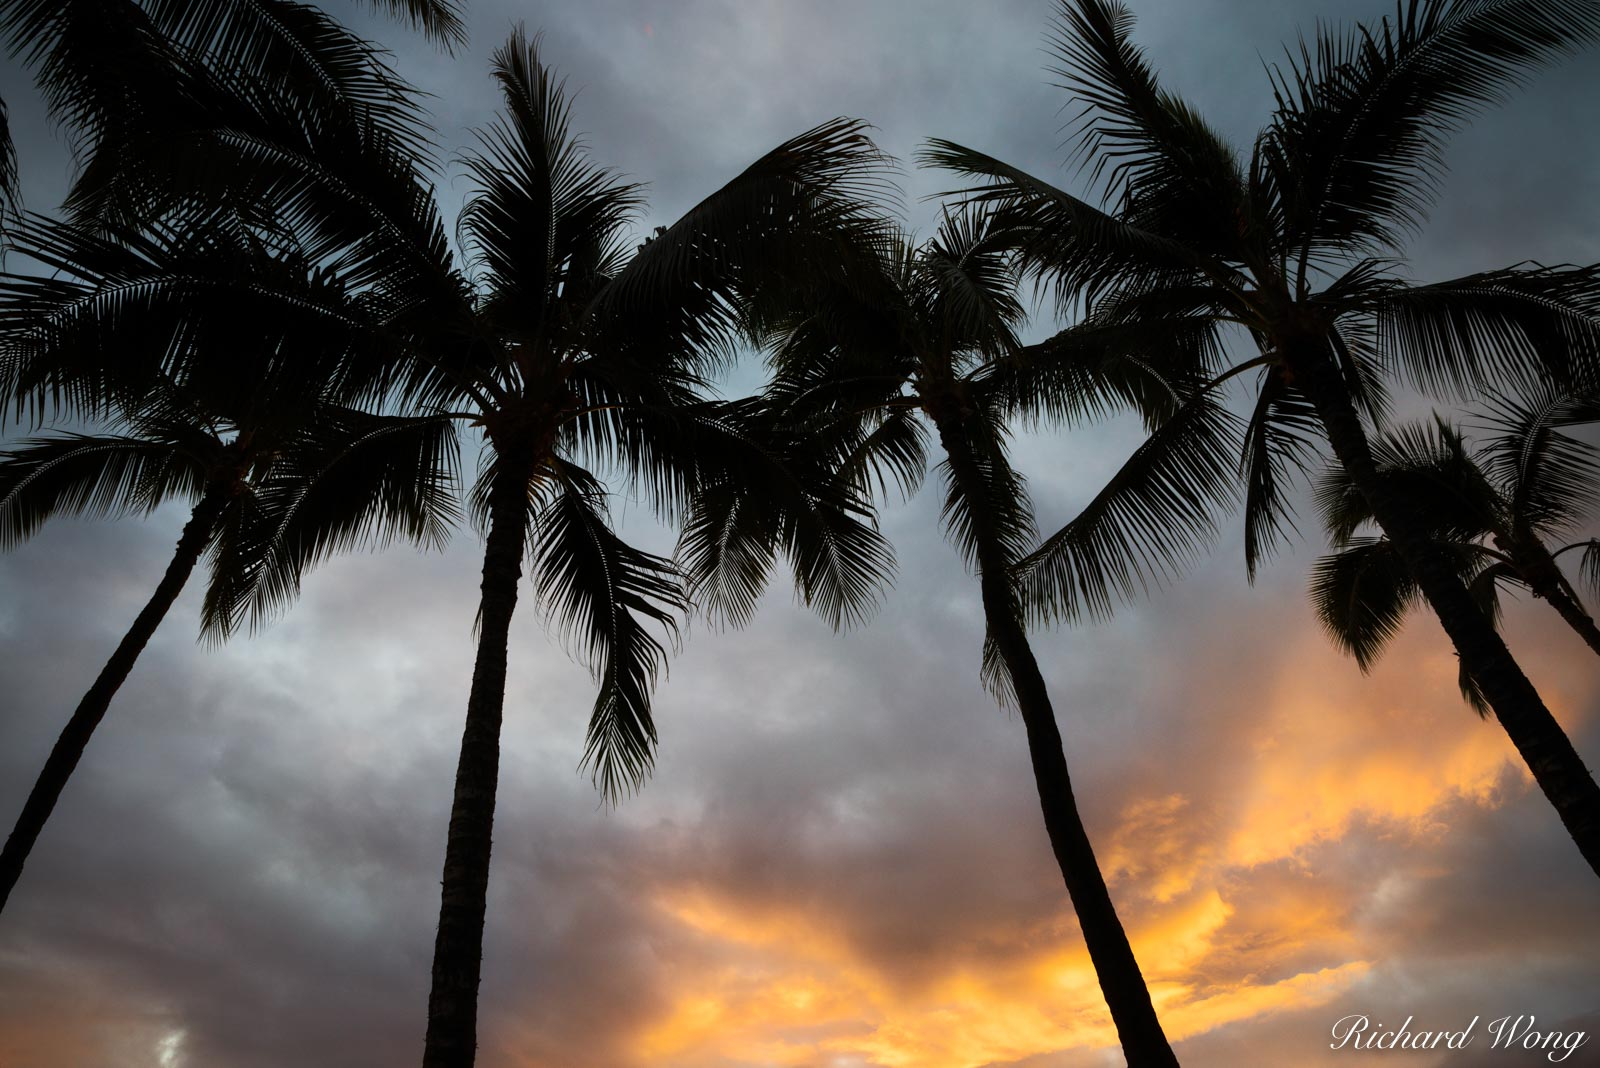 Palm Trees & Sunset at Waikiki Beach, Honolulu, Oahu, Hawaii I made this Hawaiian palm tree photo at sunset on the first evening...